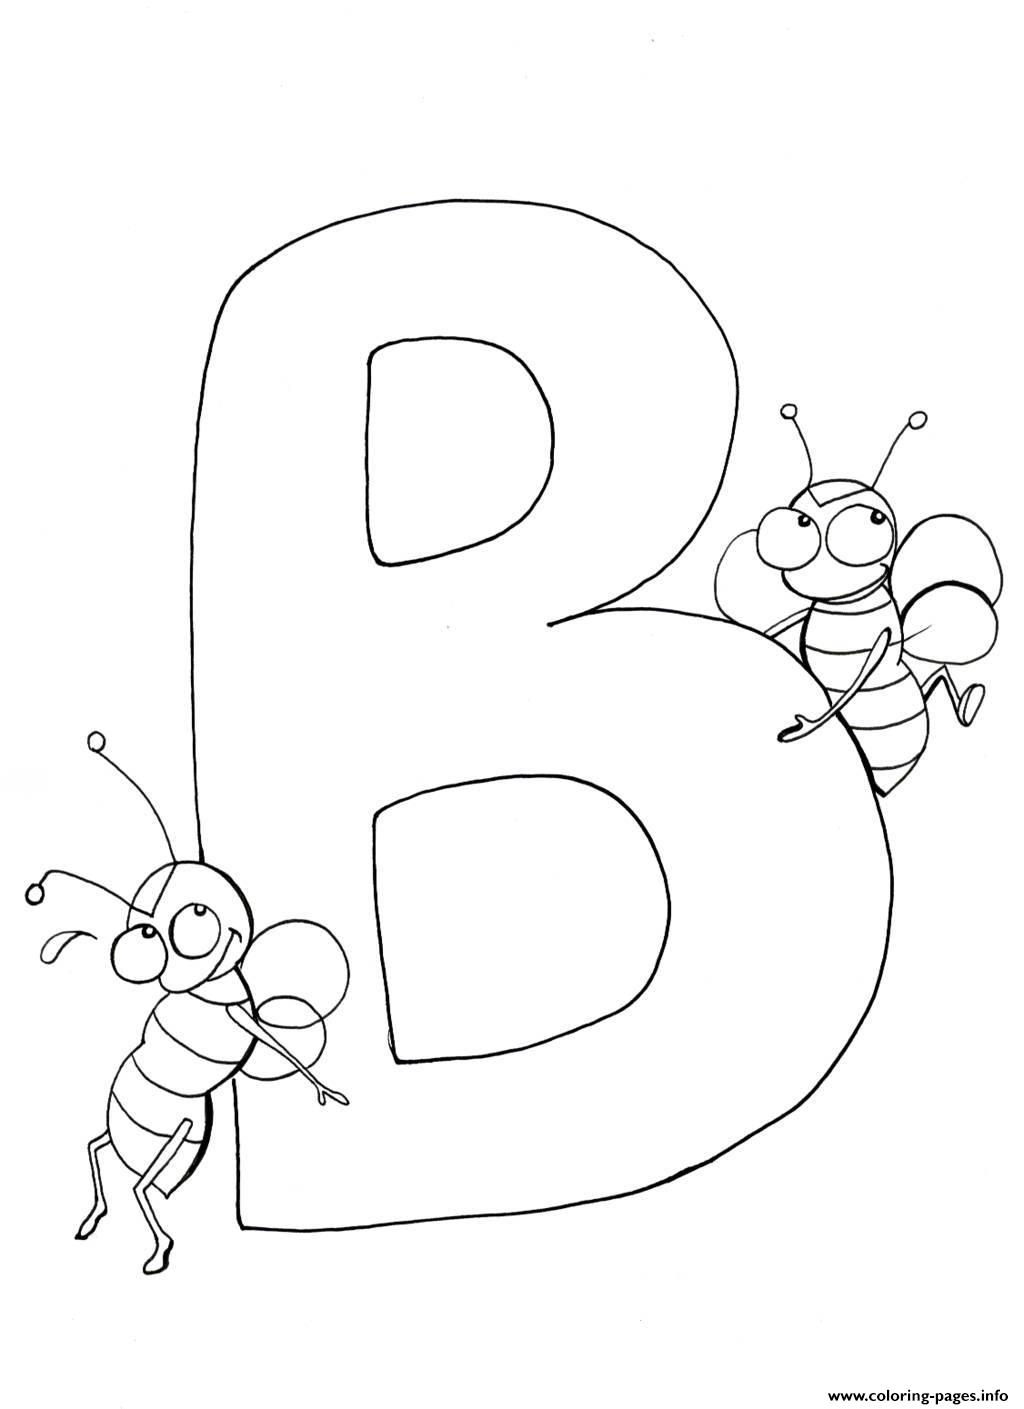 Bees Alphabet S869b Coloring Pages Printable